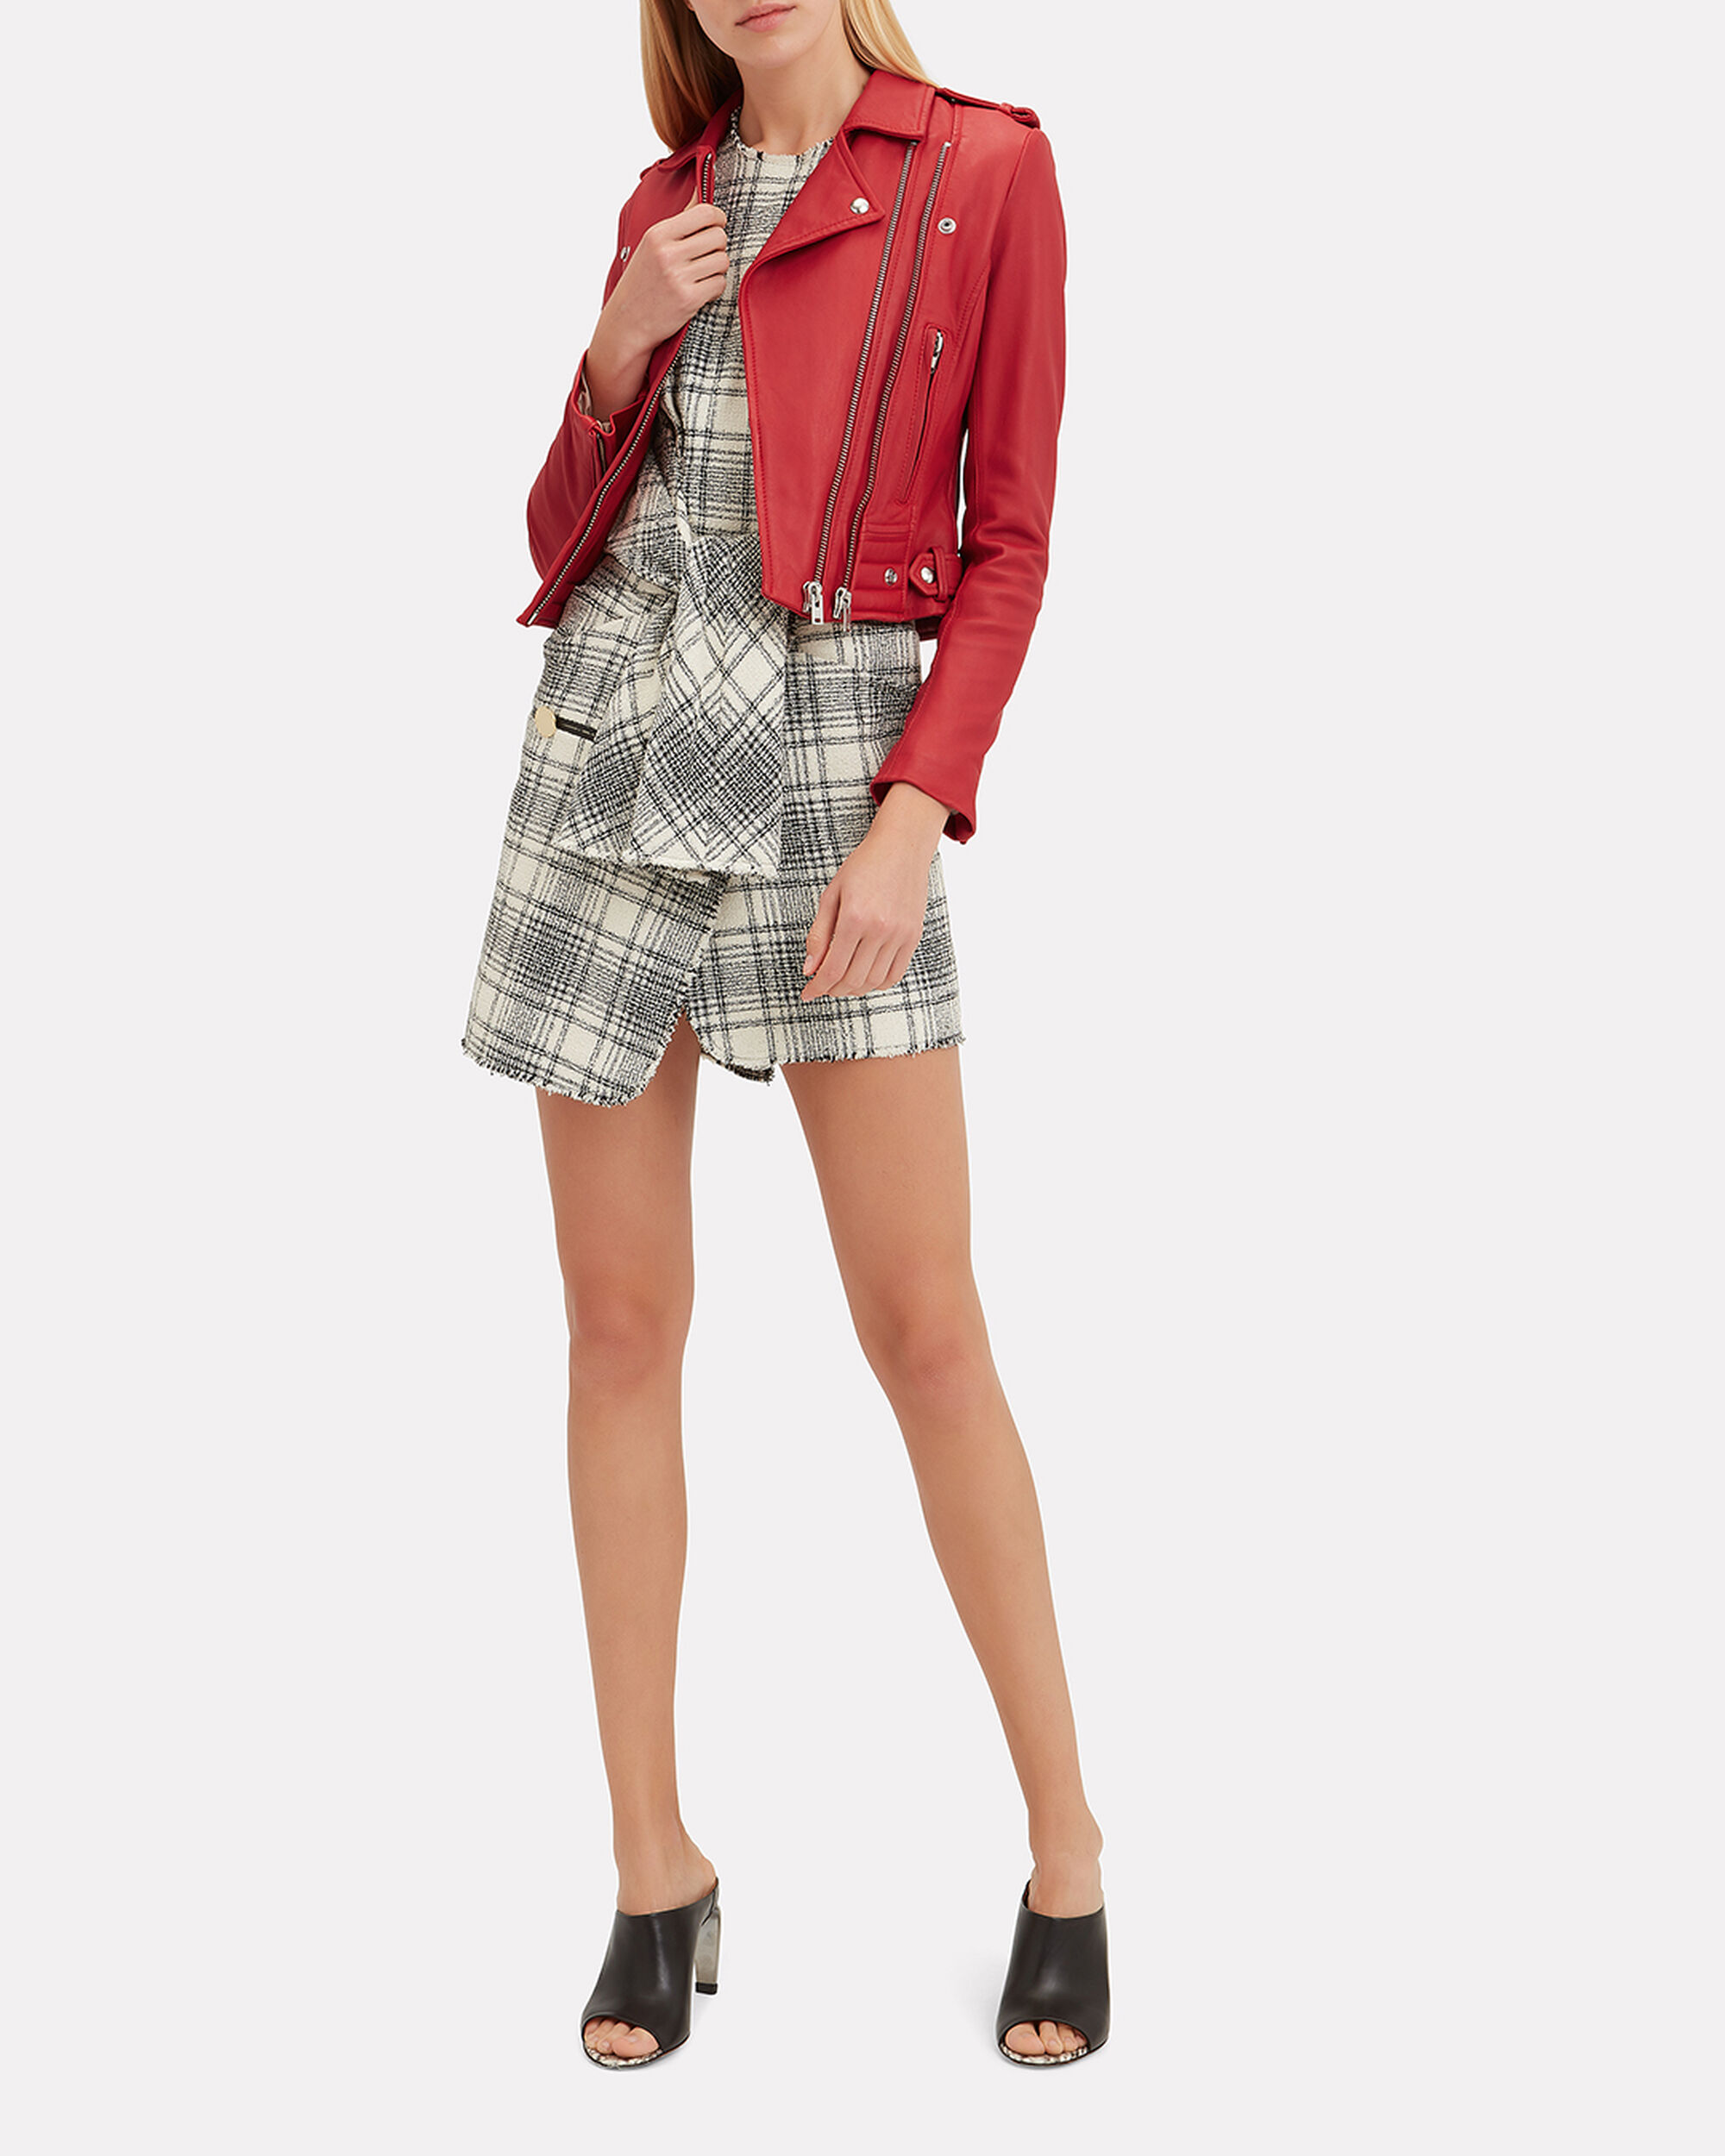 Luiga Red Leather Cropped Moto Jacket, RED, hi-res